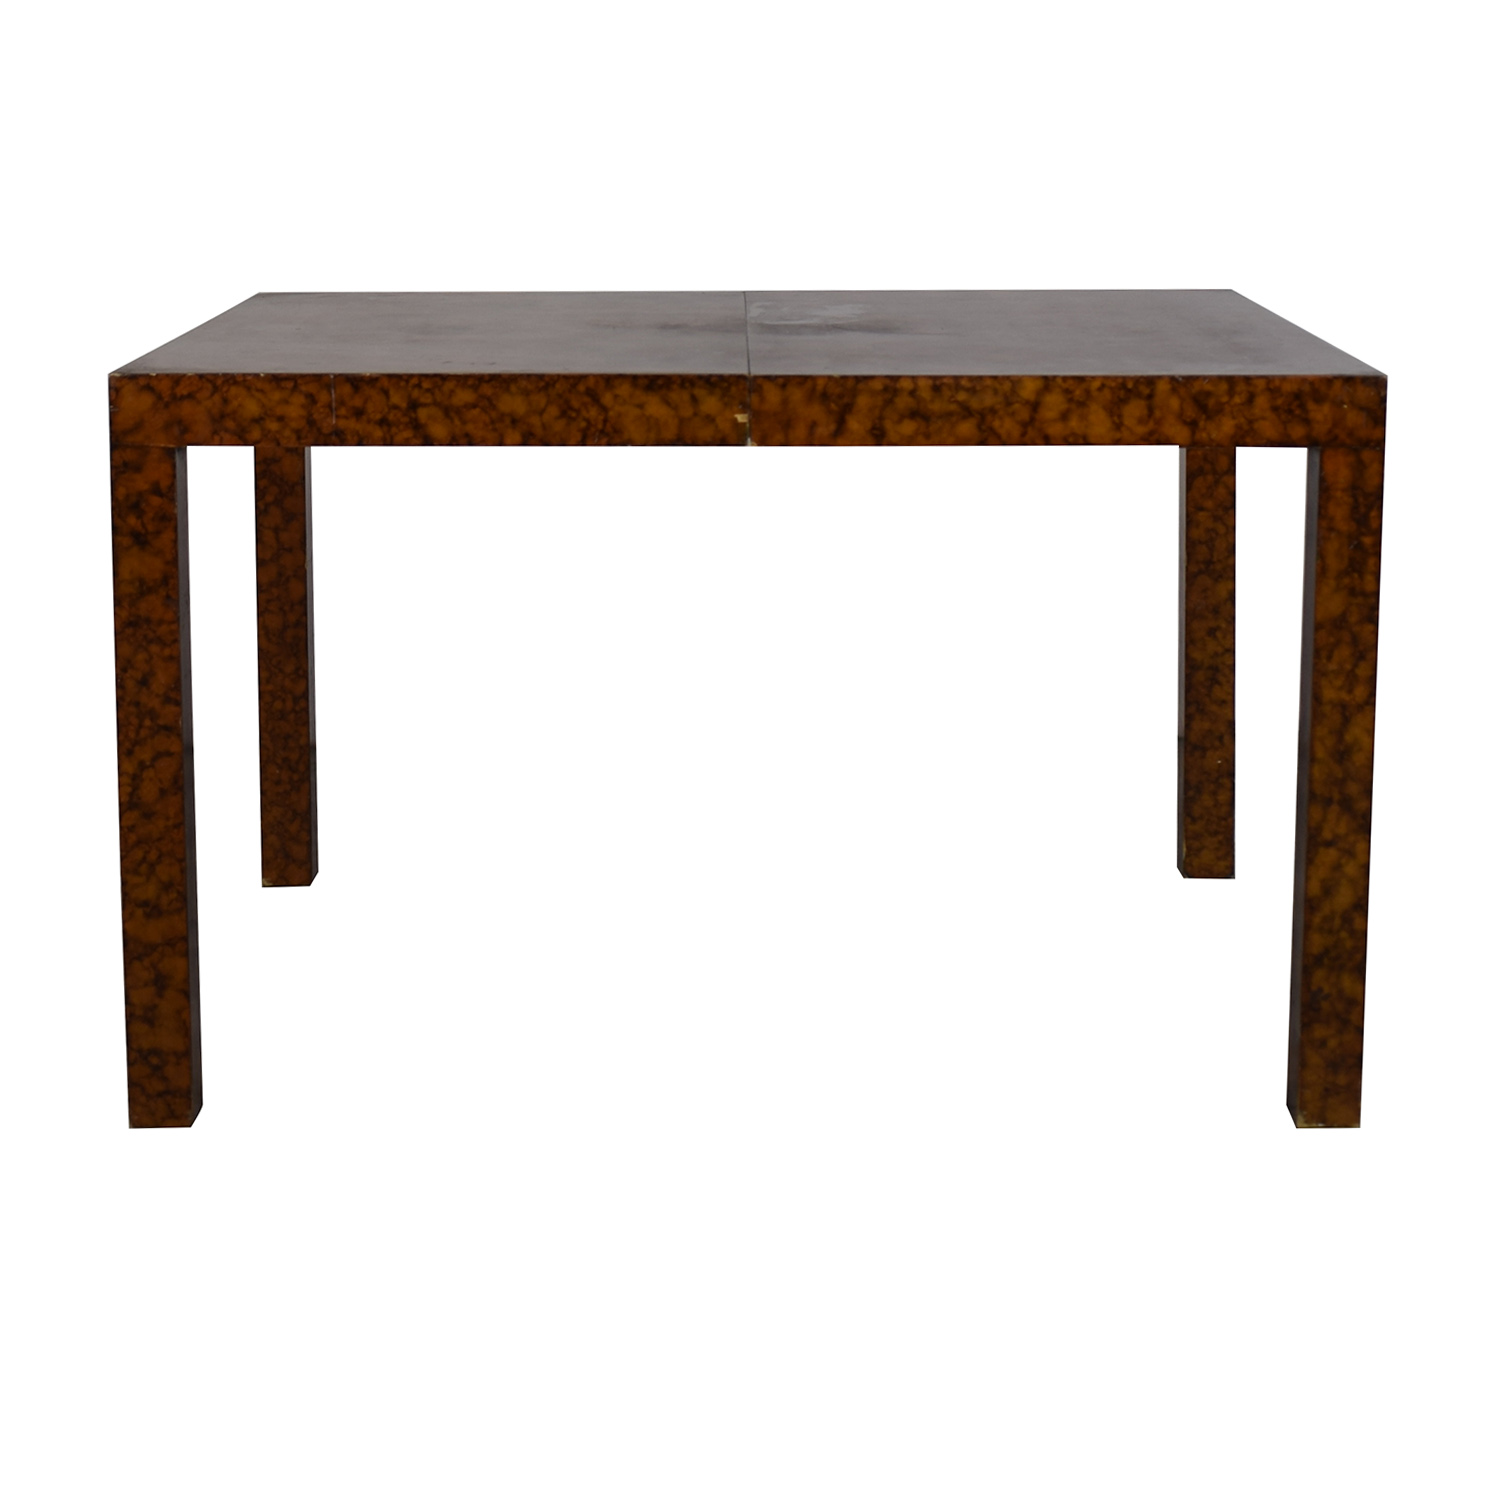 Directional Furniture Directional Furniture Milo Baughman Burl Parsons Dining Table brown